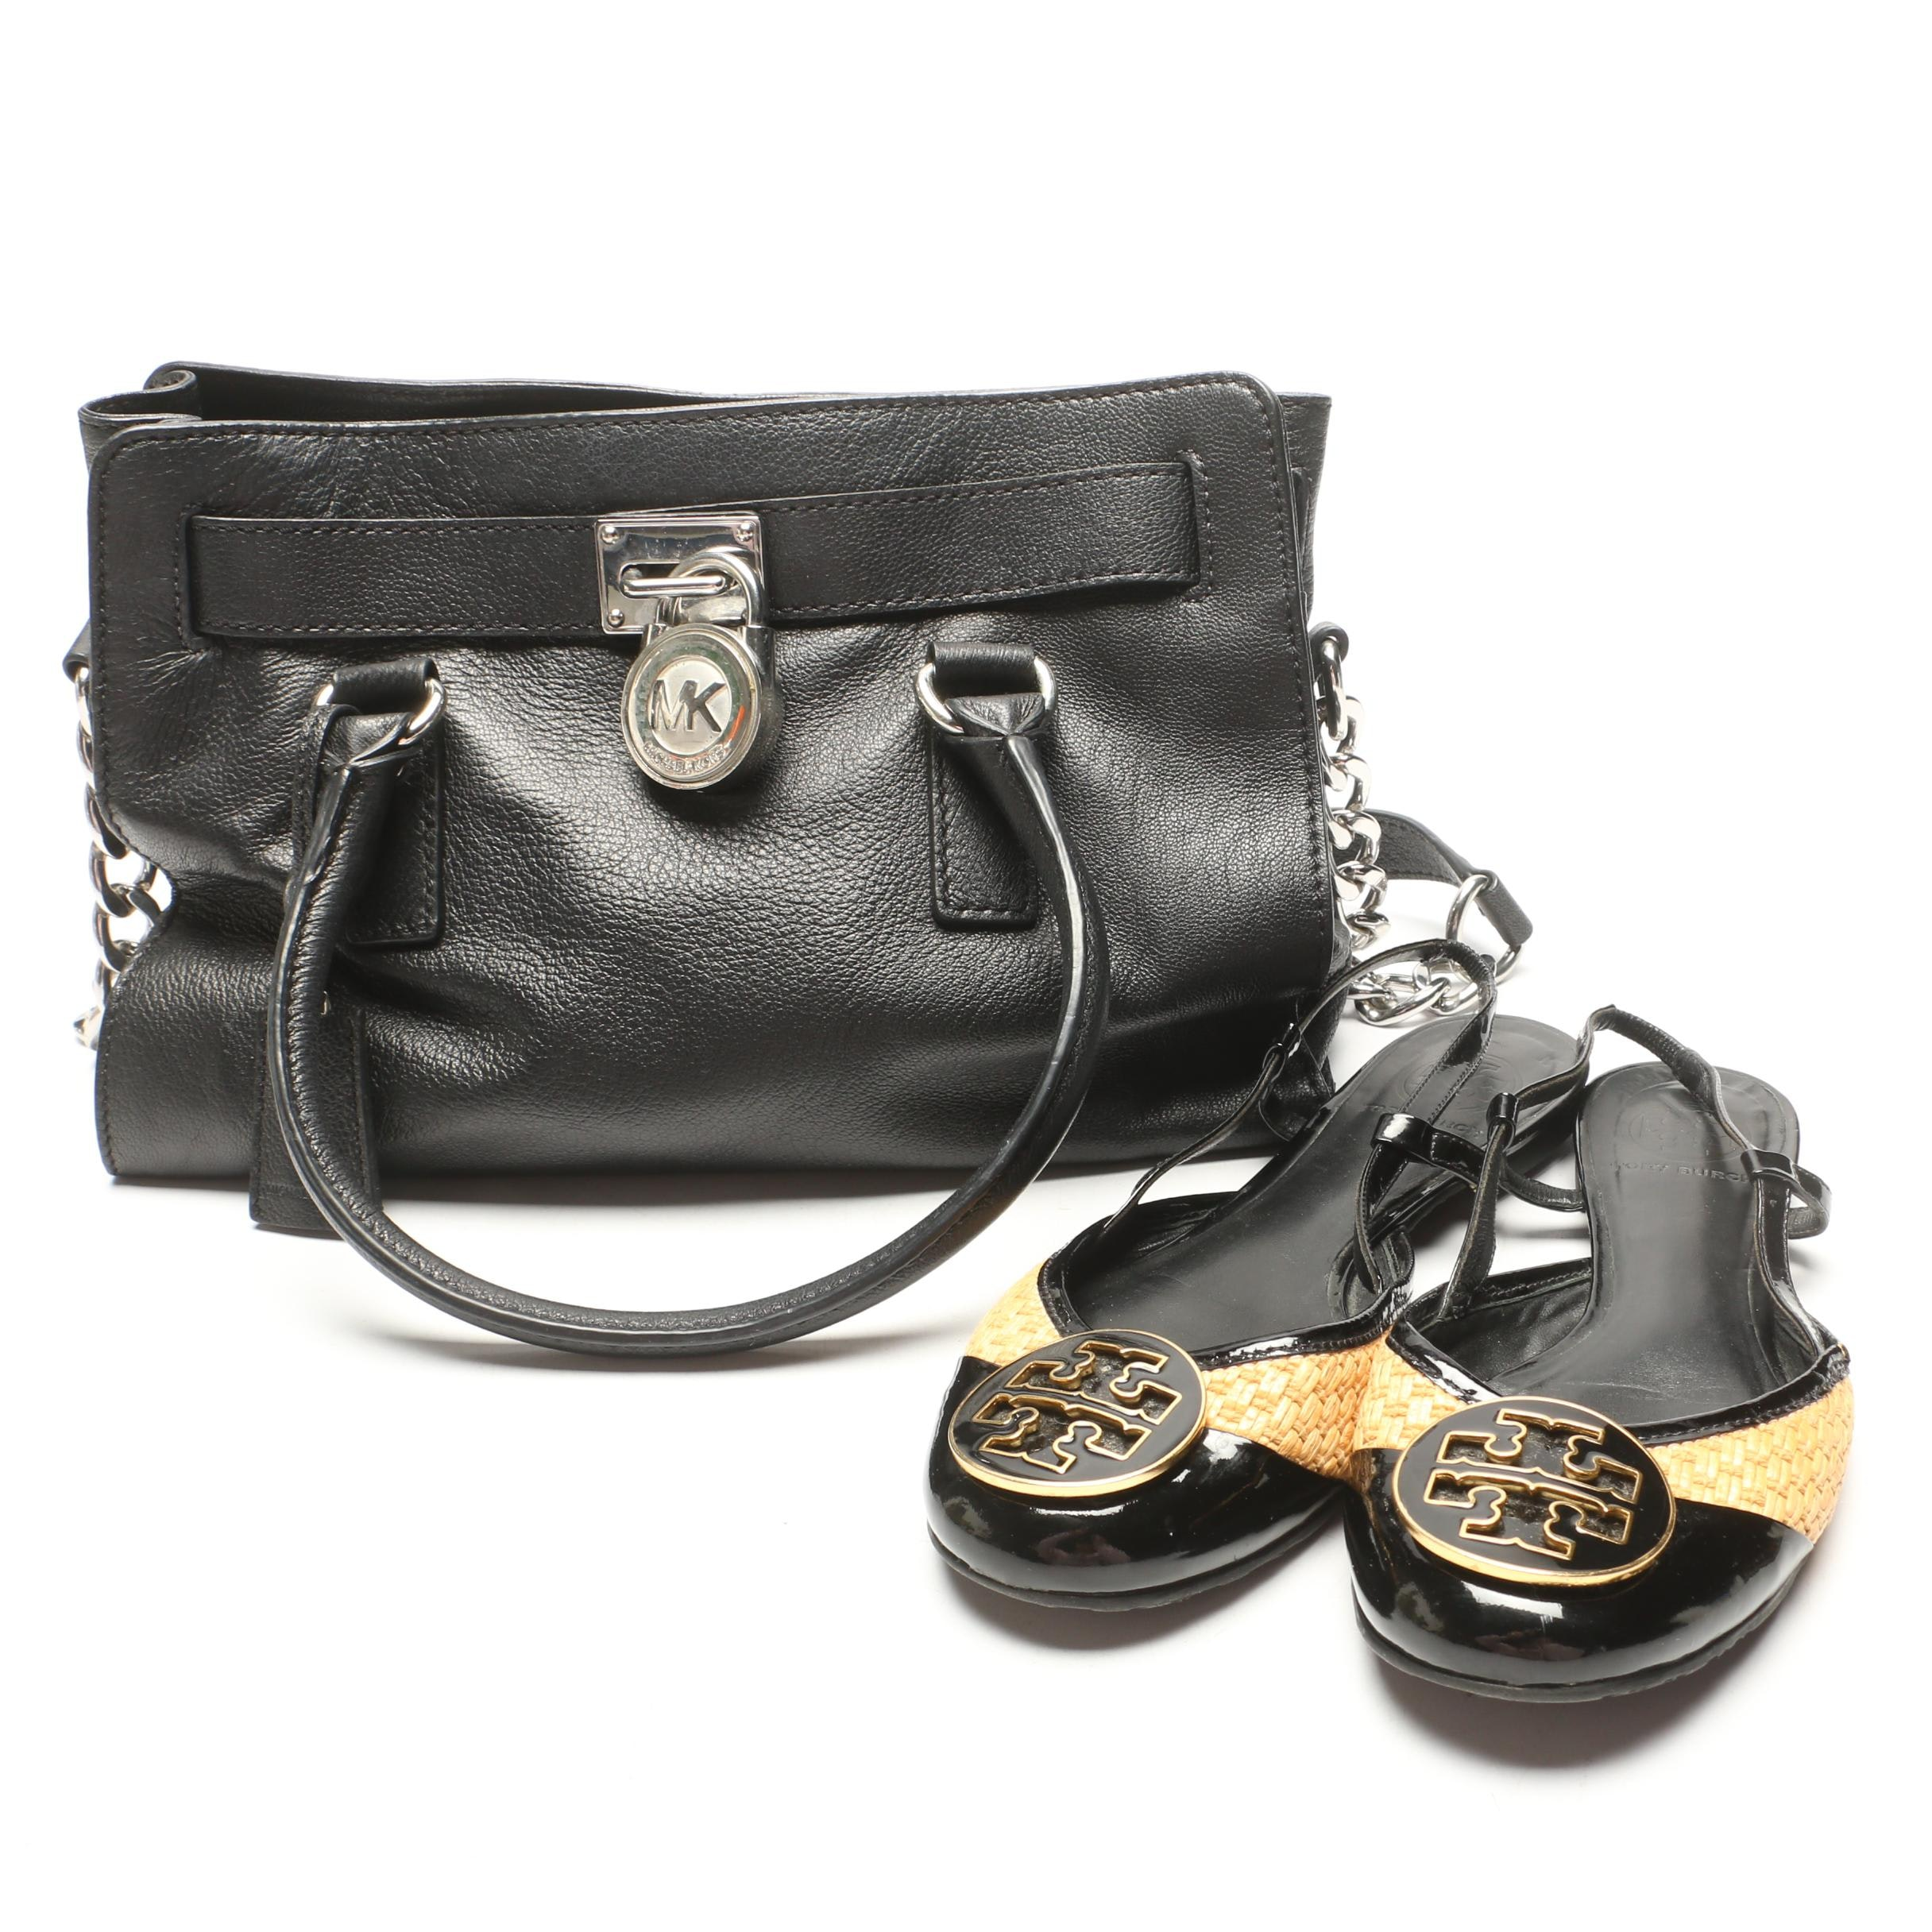 MICHAEL Michael Kors Black Leather Tote and Tory Burch Flats